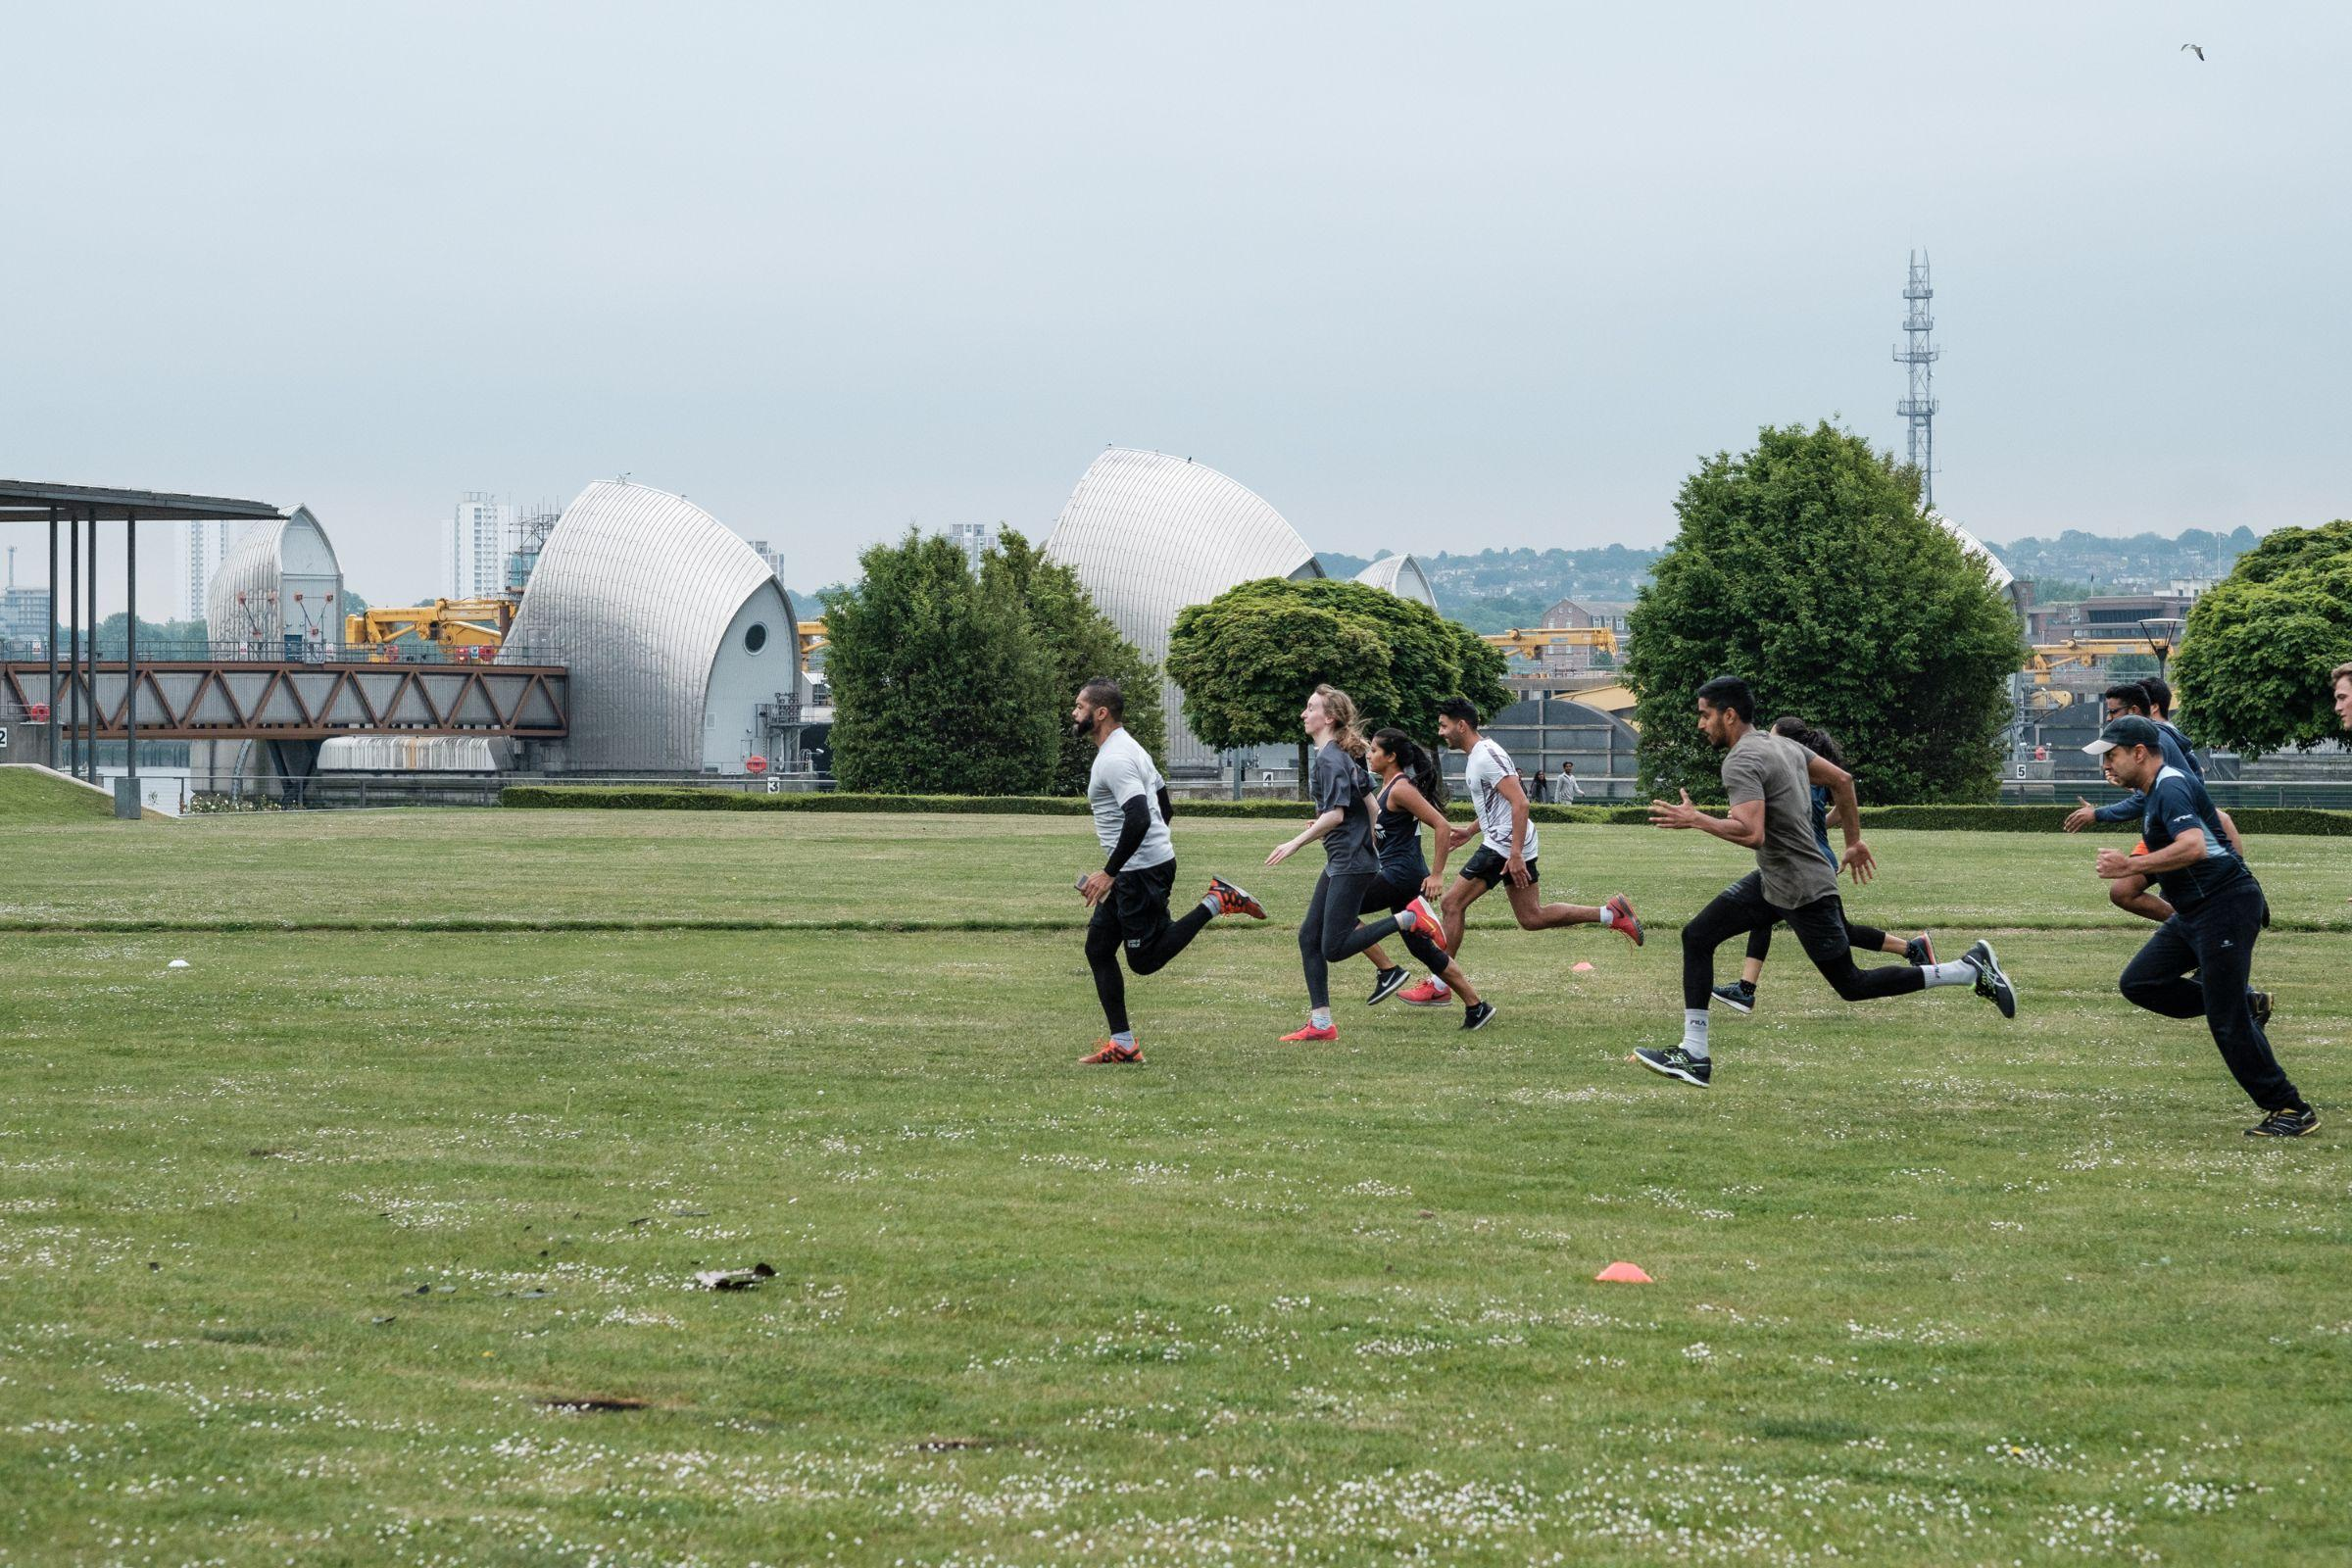 People sprinting across green space with Thames Barrier in the background